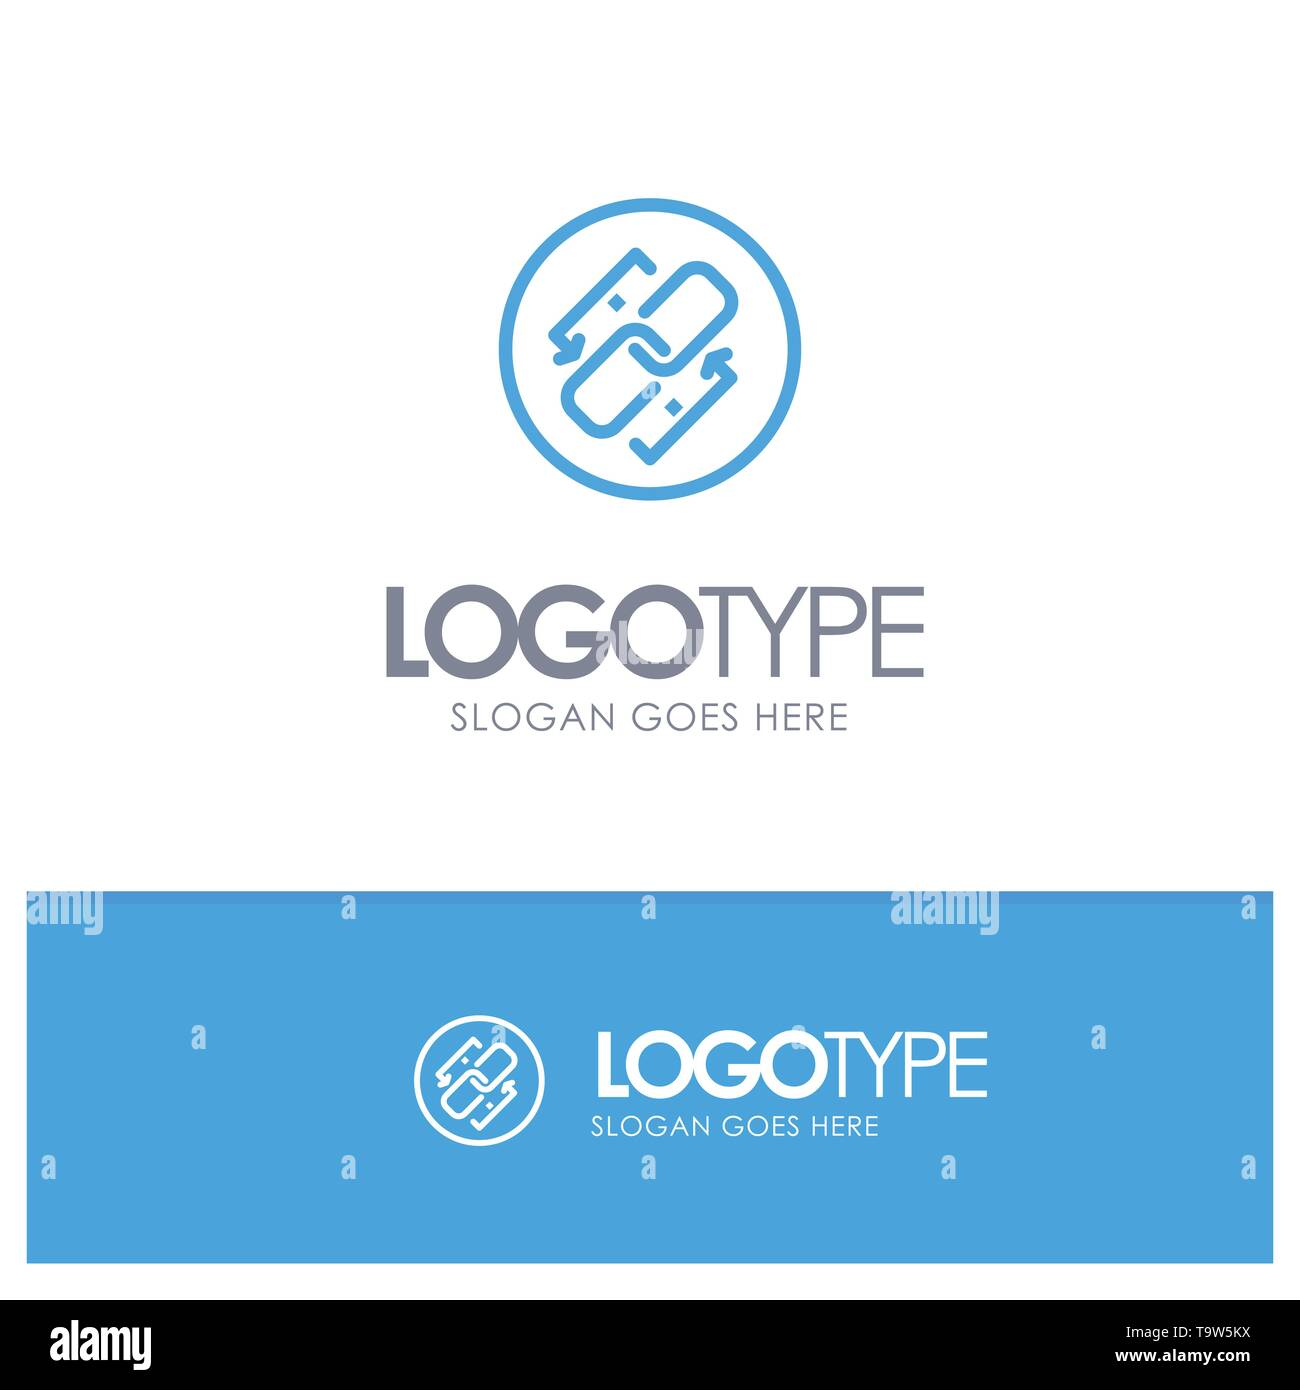 Link, Chain, Url, Connection, Link Blue outLine Logo with place for tagline - Stock Image